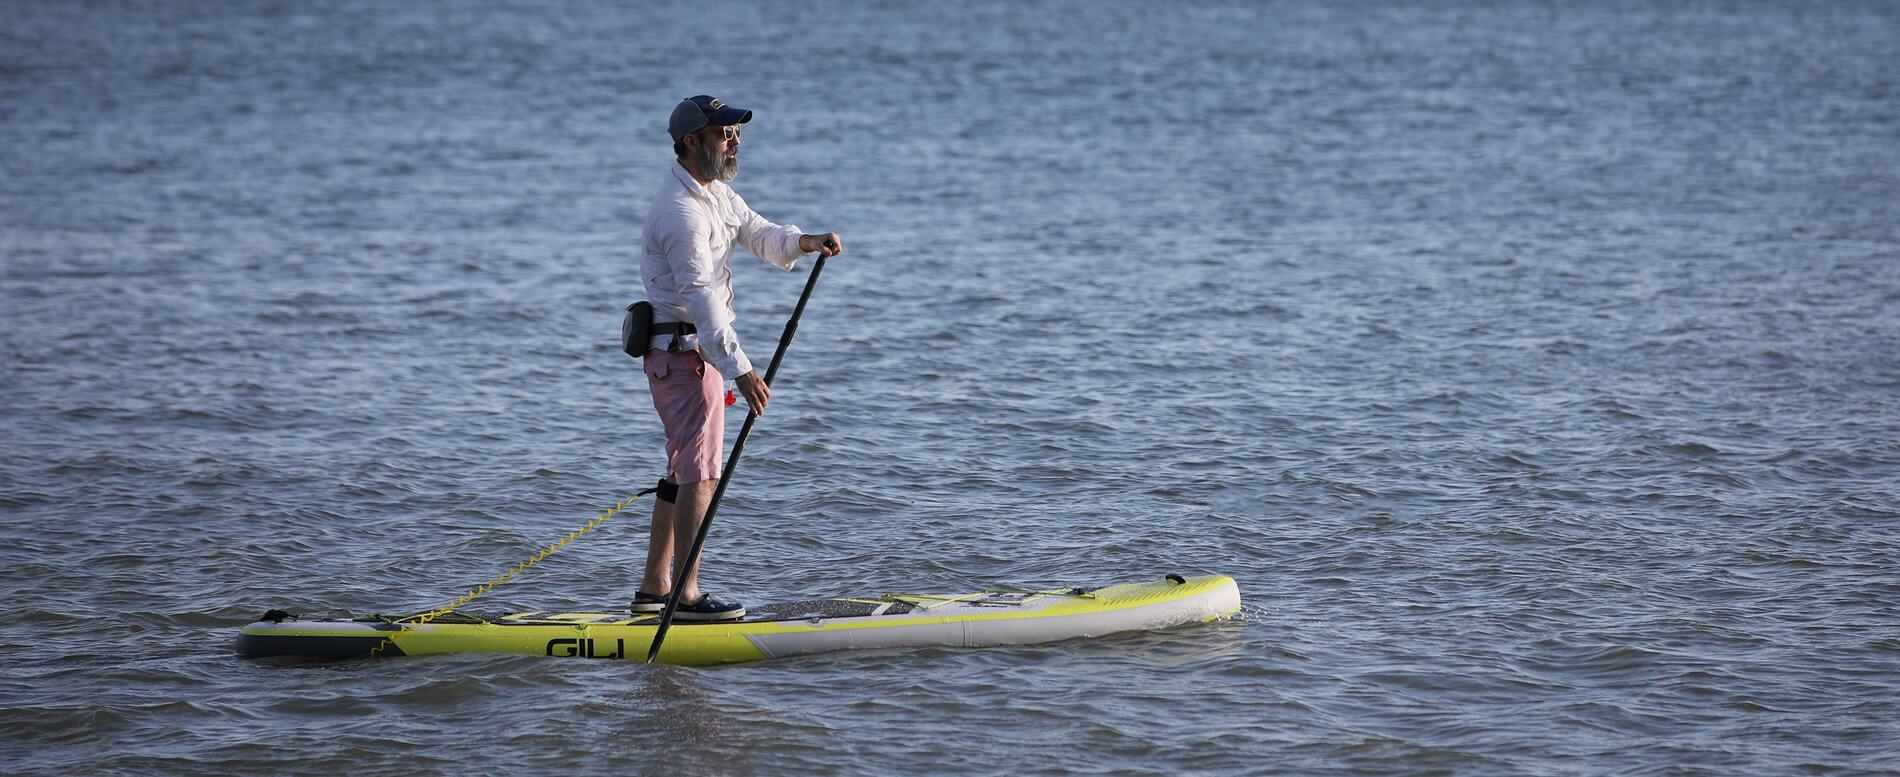 SUP Fitness: How Many Calories Do You Burn While Paddle Boarding?